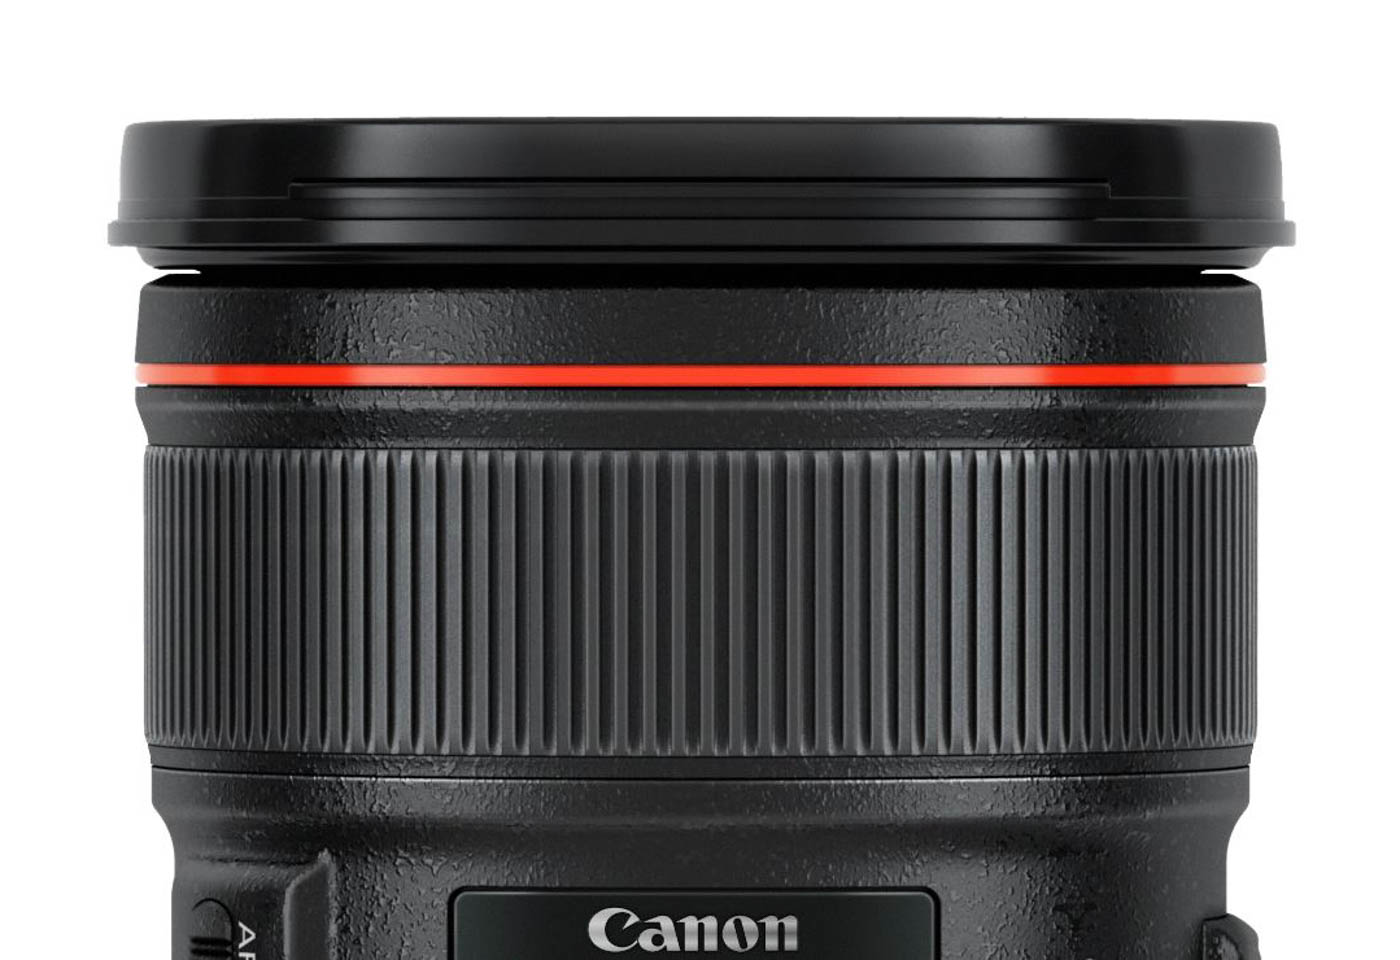 Canon L-series lenses red ring